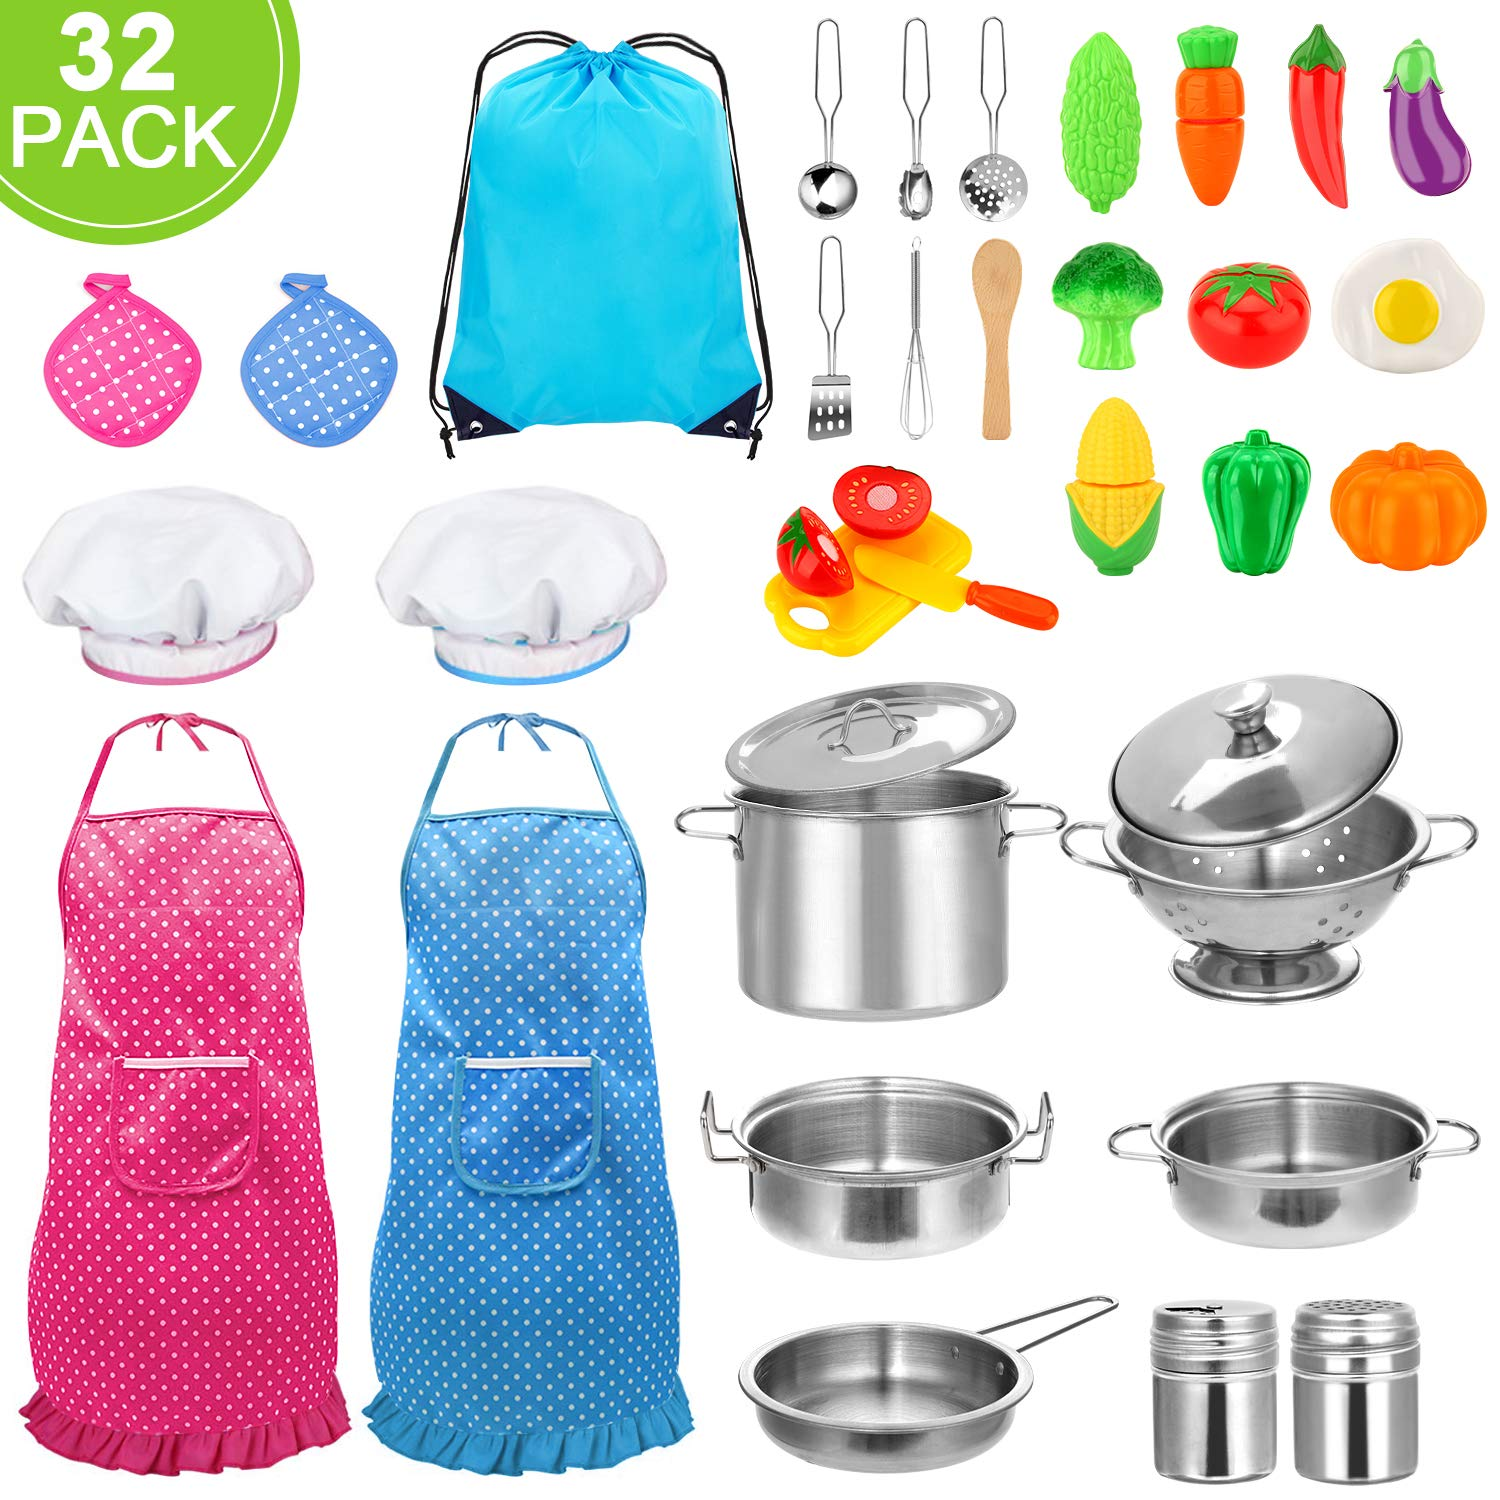 Stainless Utensils Cookware Vegetables Toddlers